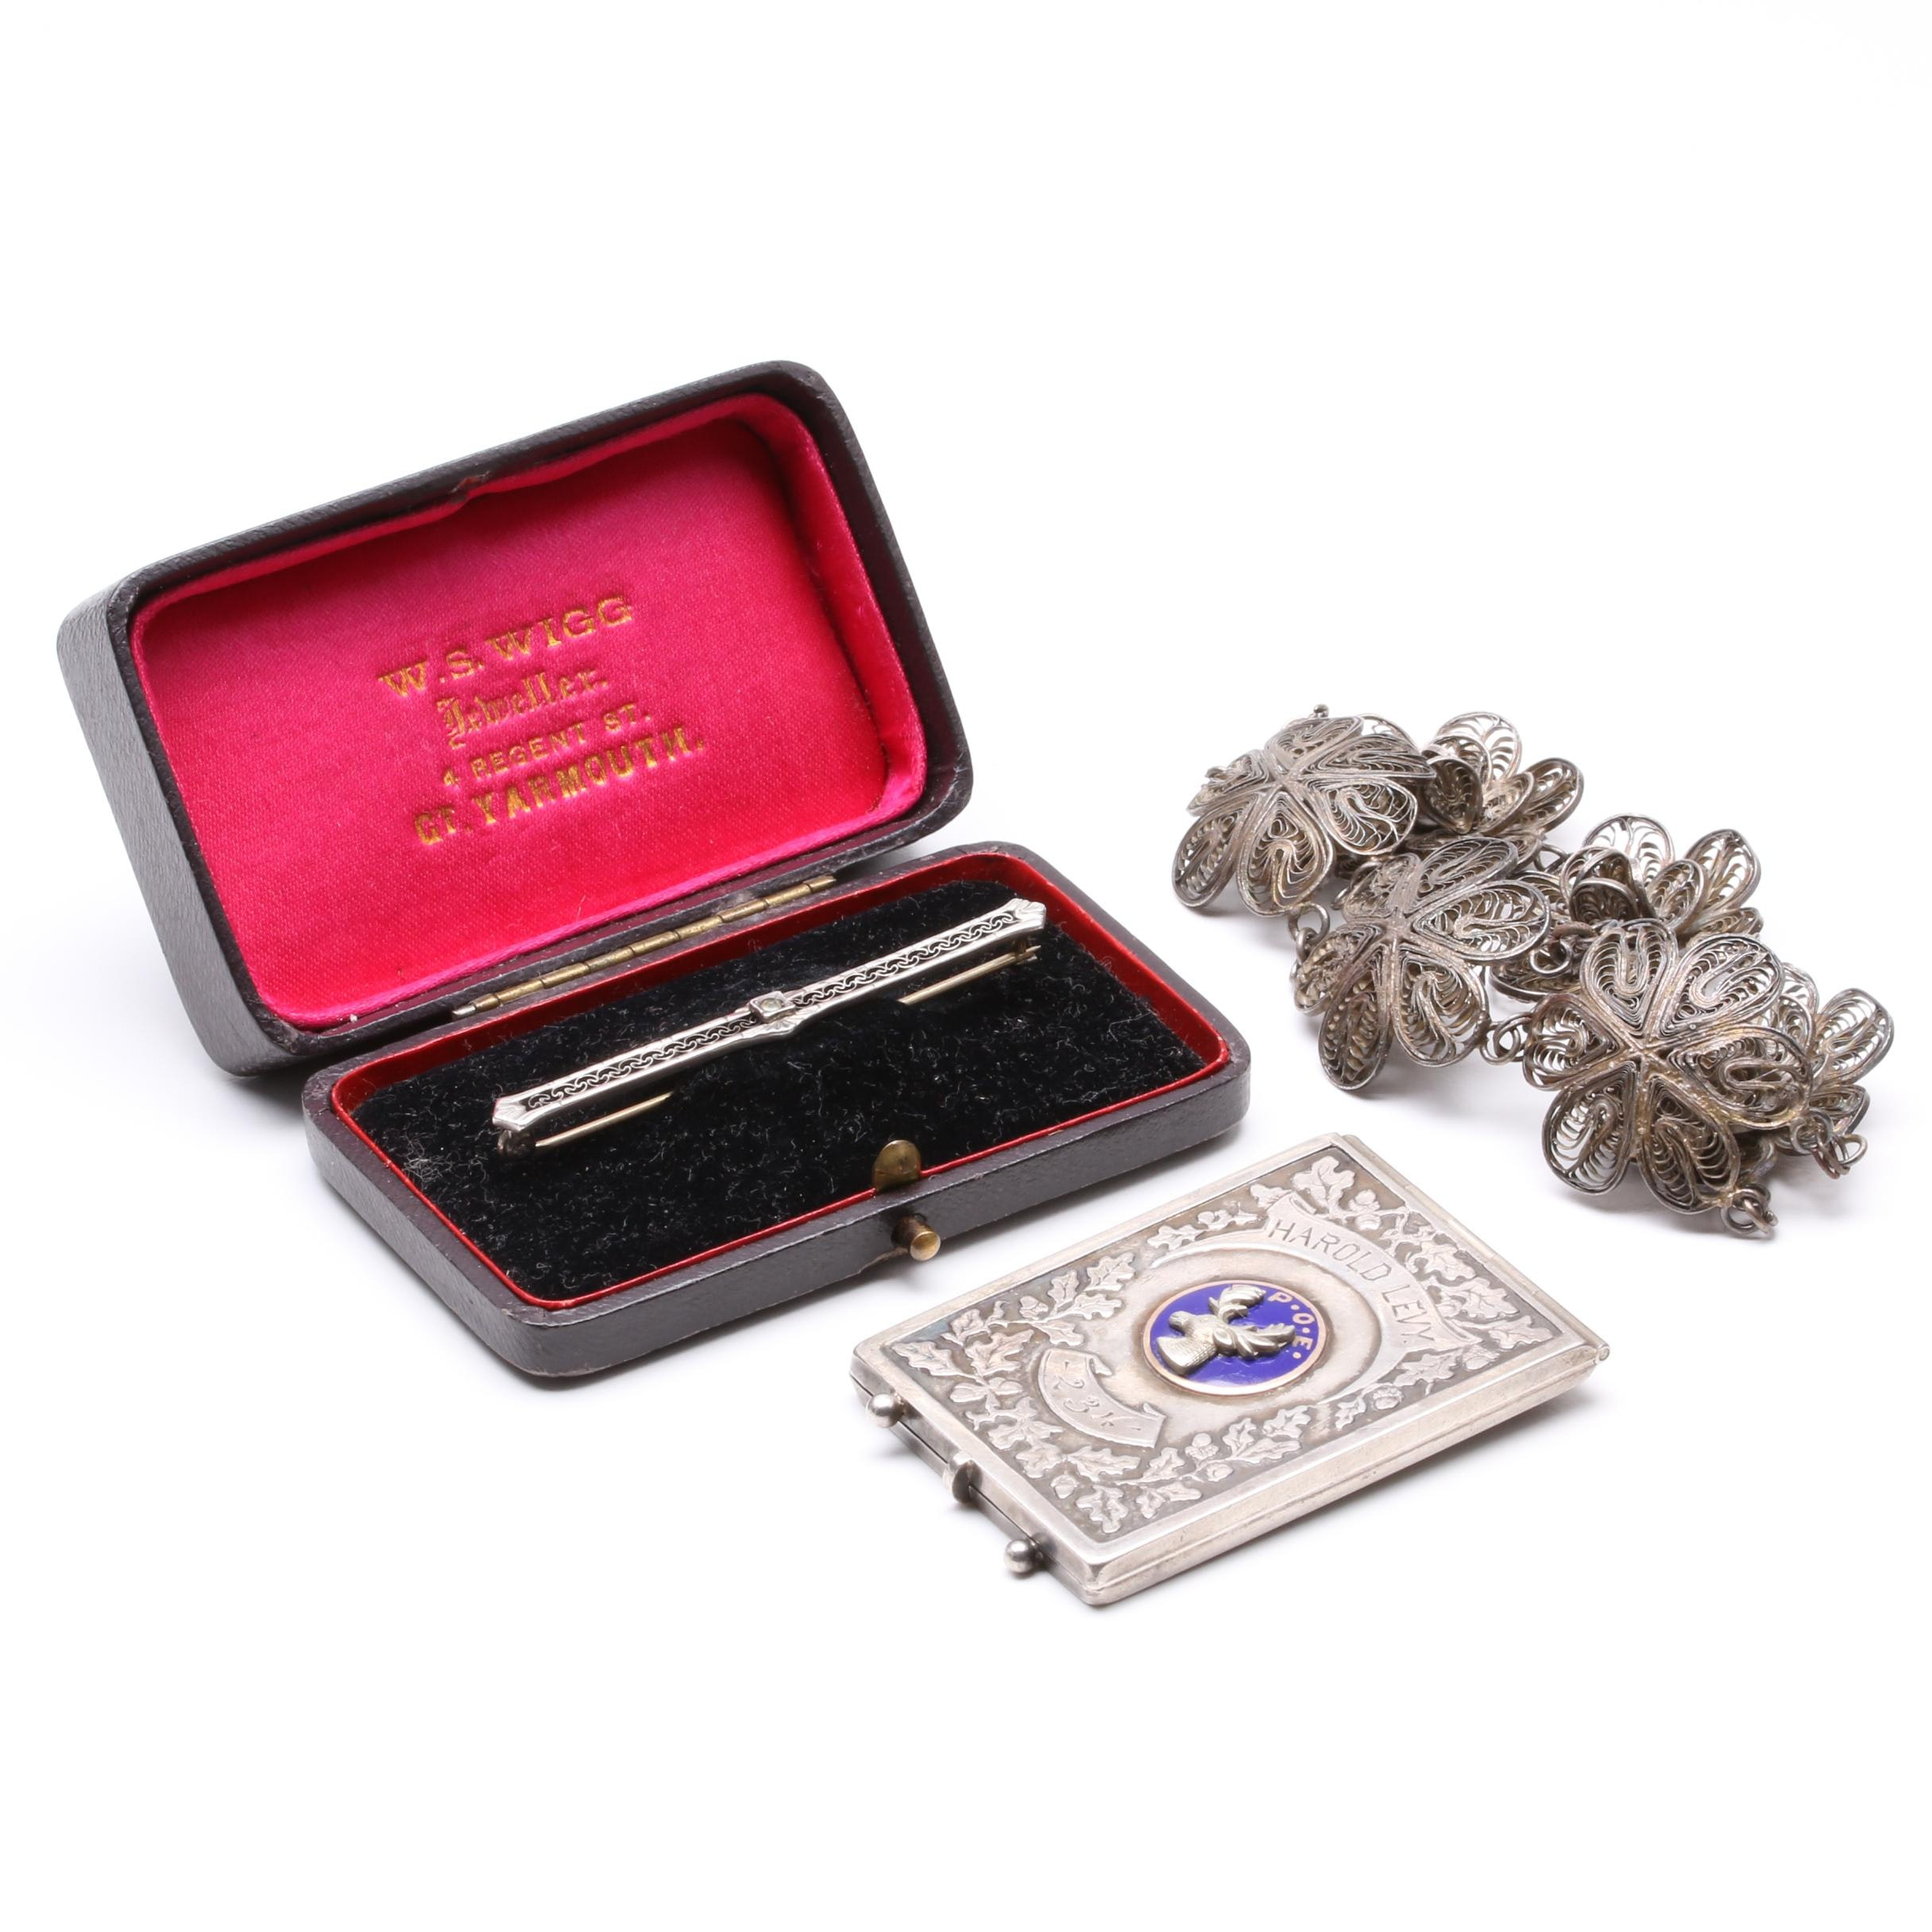 Sterling Silver Jewelry Including Elks Lodge Card Case, Brooch, and Bracelet